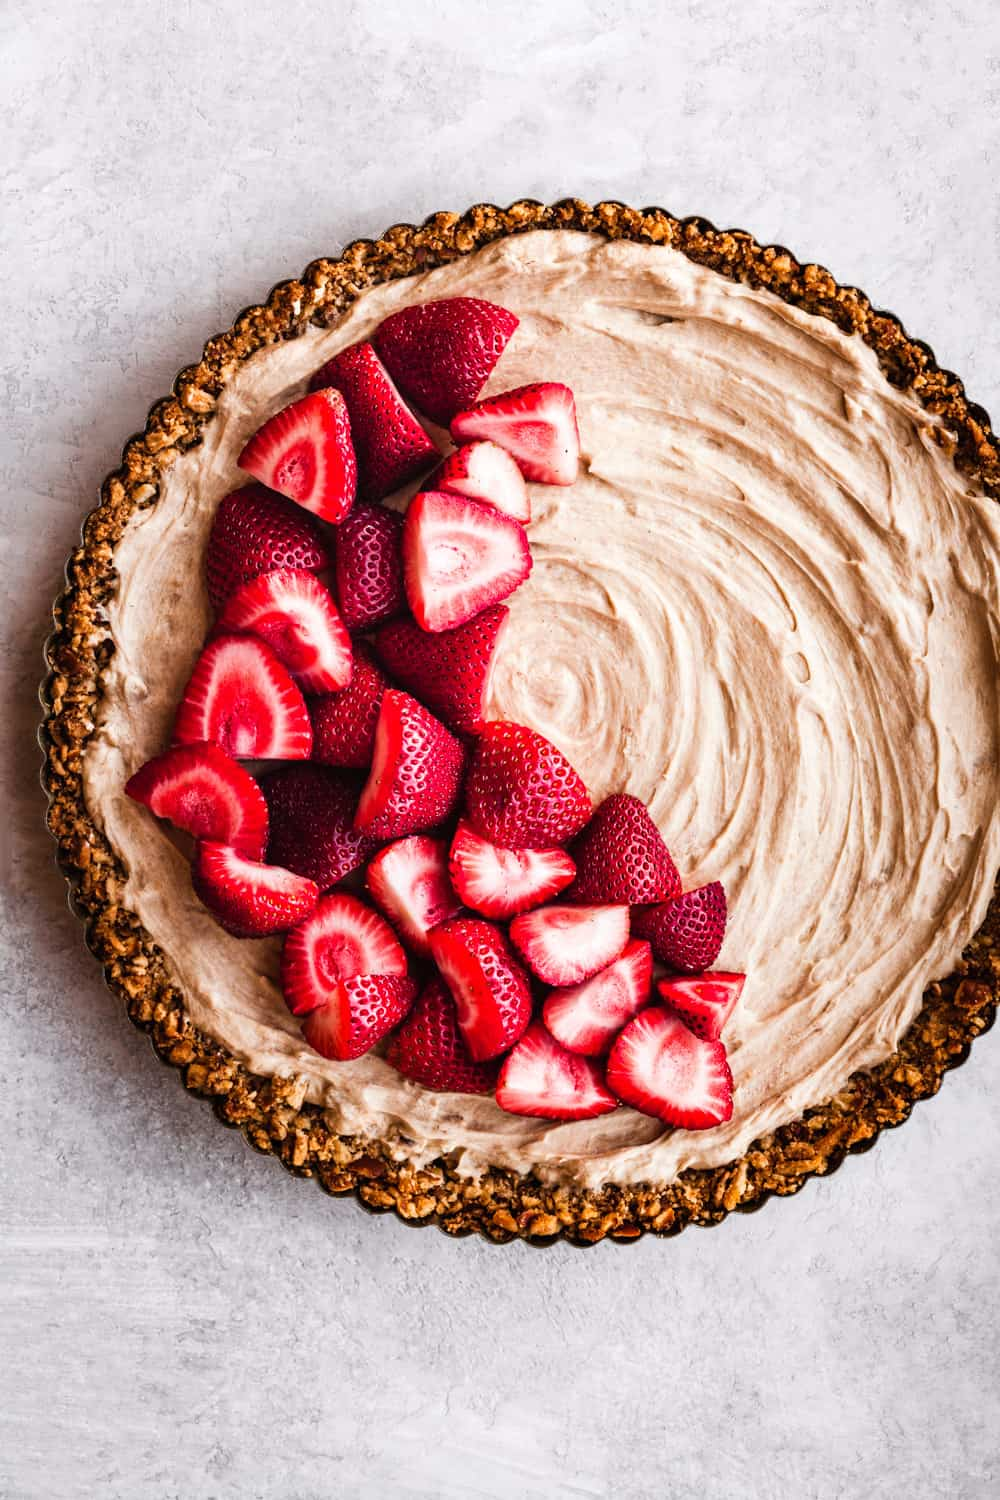 No-Bake Strawberry Cheesecake with a pretzel crust, overhead shot on a white background.